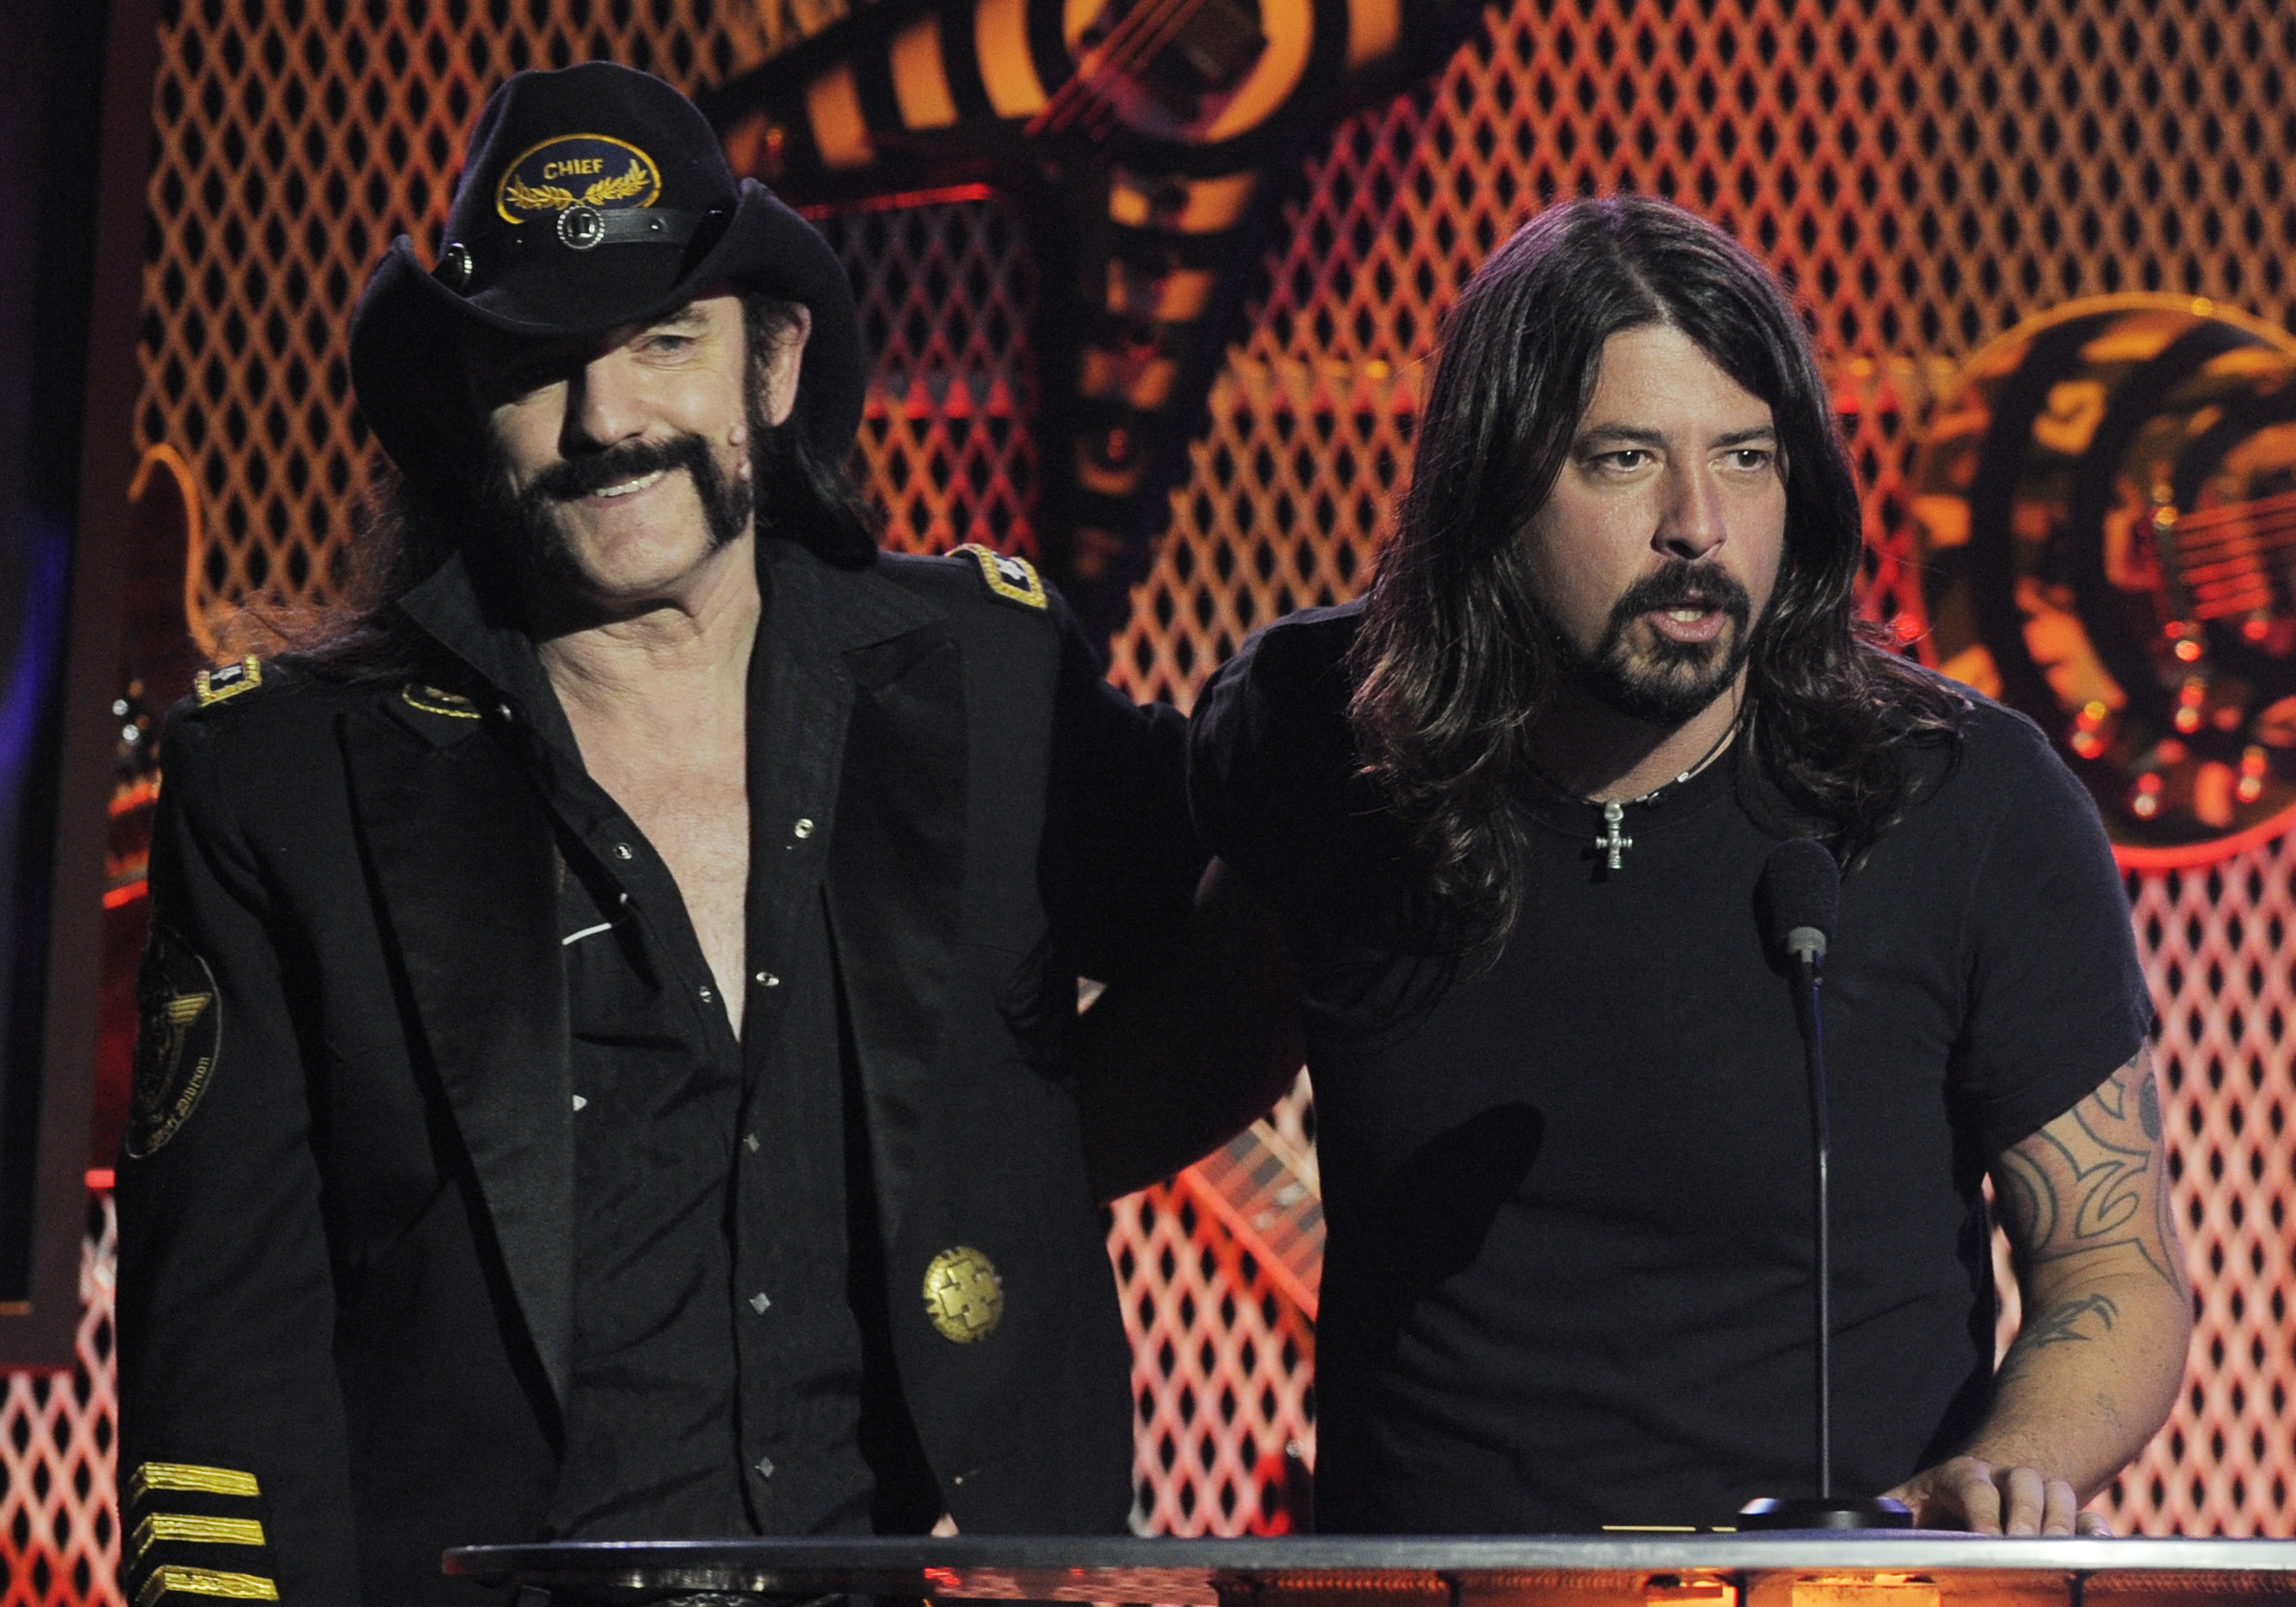 Motorhead singer Lemmy Kilmister, left, with Dave Grohl during the second annual Revolver Golden Gods Awards in Los Angeles, April 8, 2010